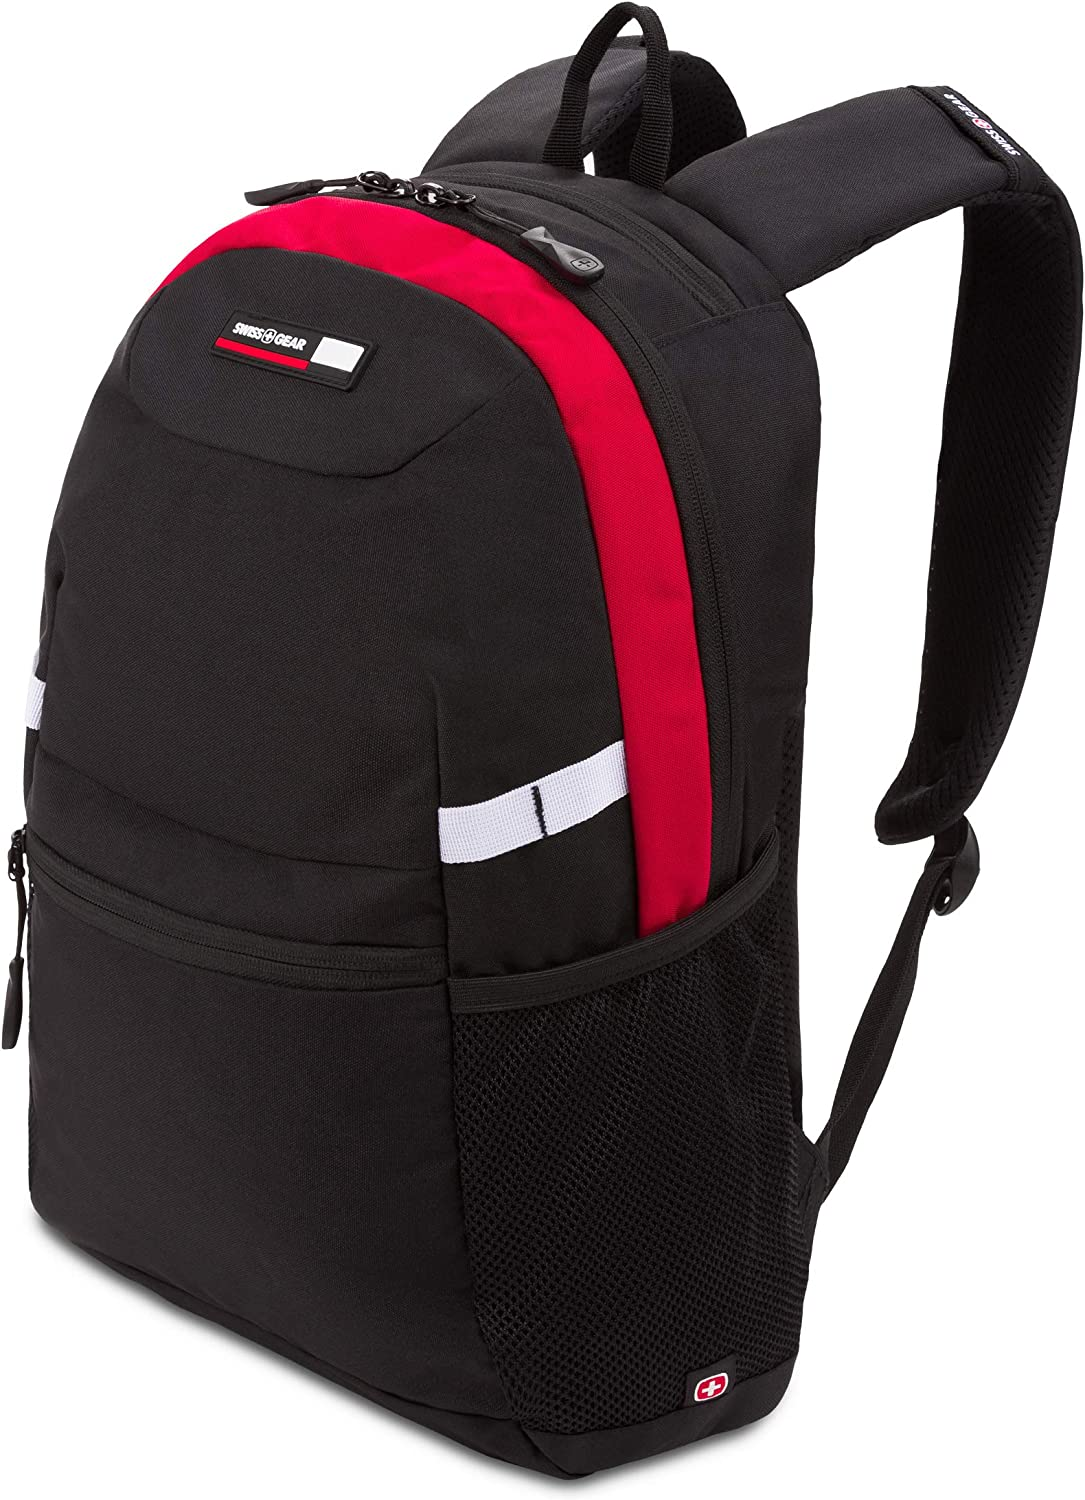 SWISSGEAR 2905 Large Laptop Backpack School Work and Travel/Black